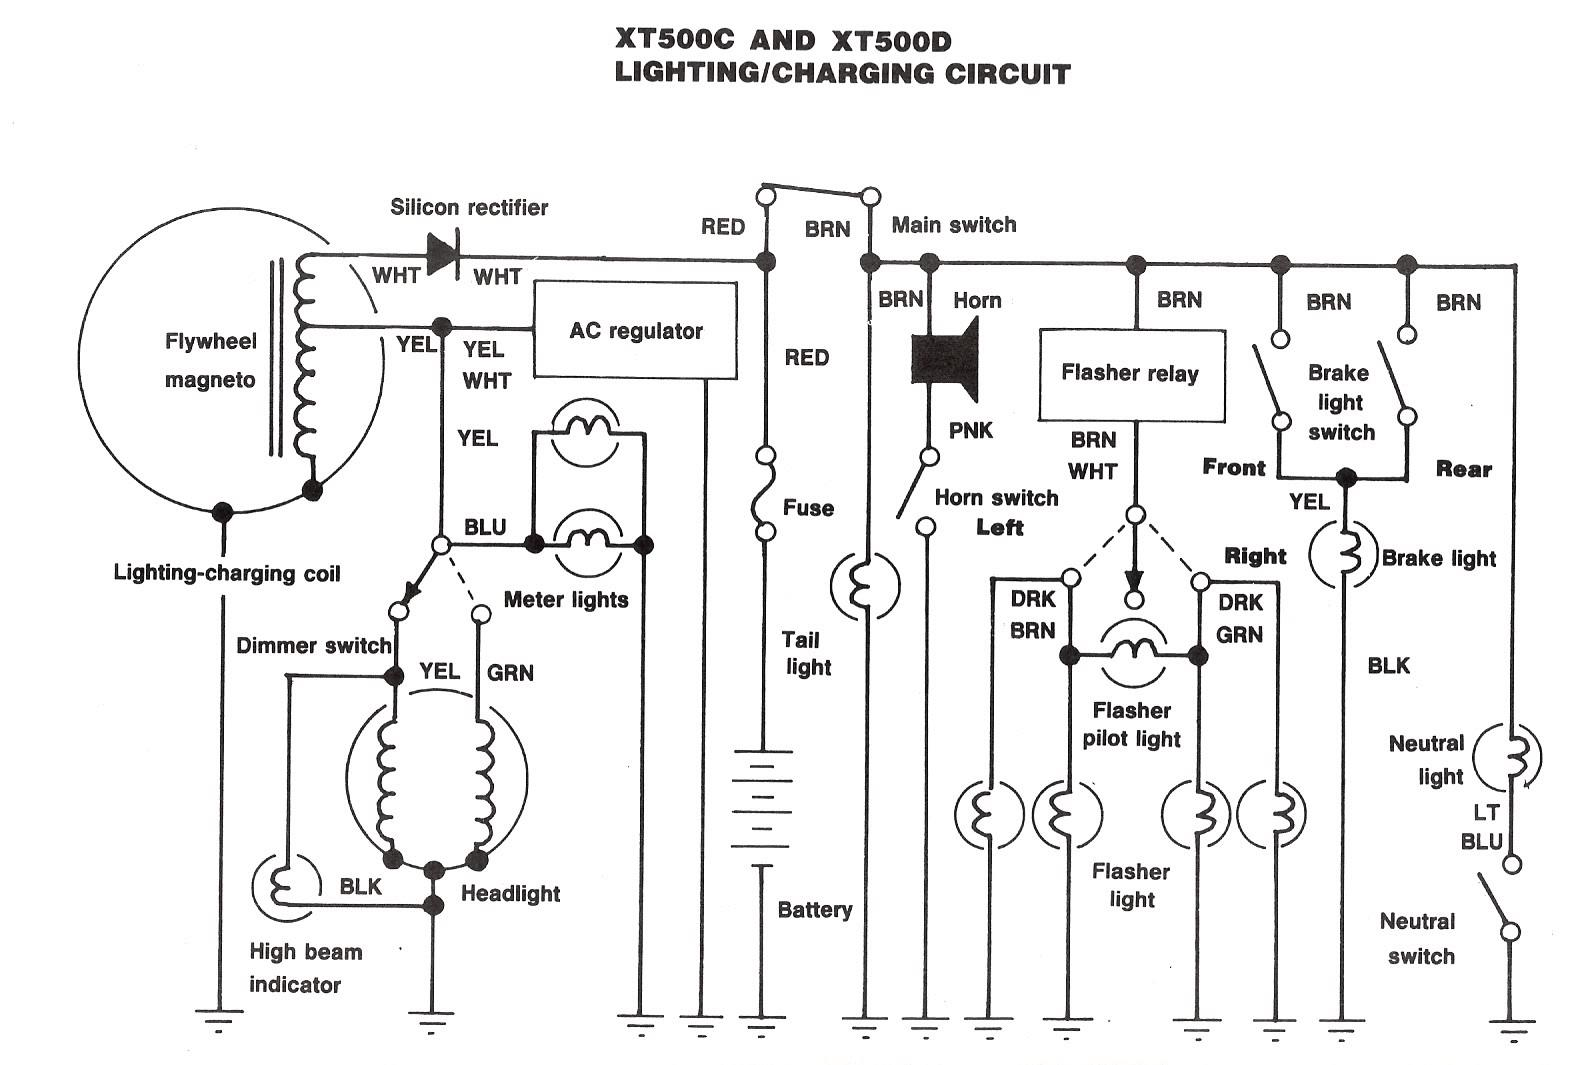 Xt500 Electrical2 Ac Wiring Diagram 1 Switch 2 Lights Here Is The Lighting And Charging System For Later Xt500s With A Position Ignition No Provision To Headlight Off